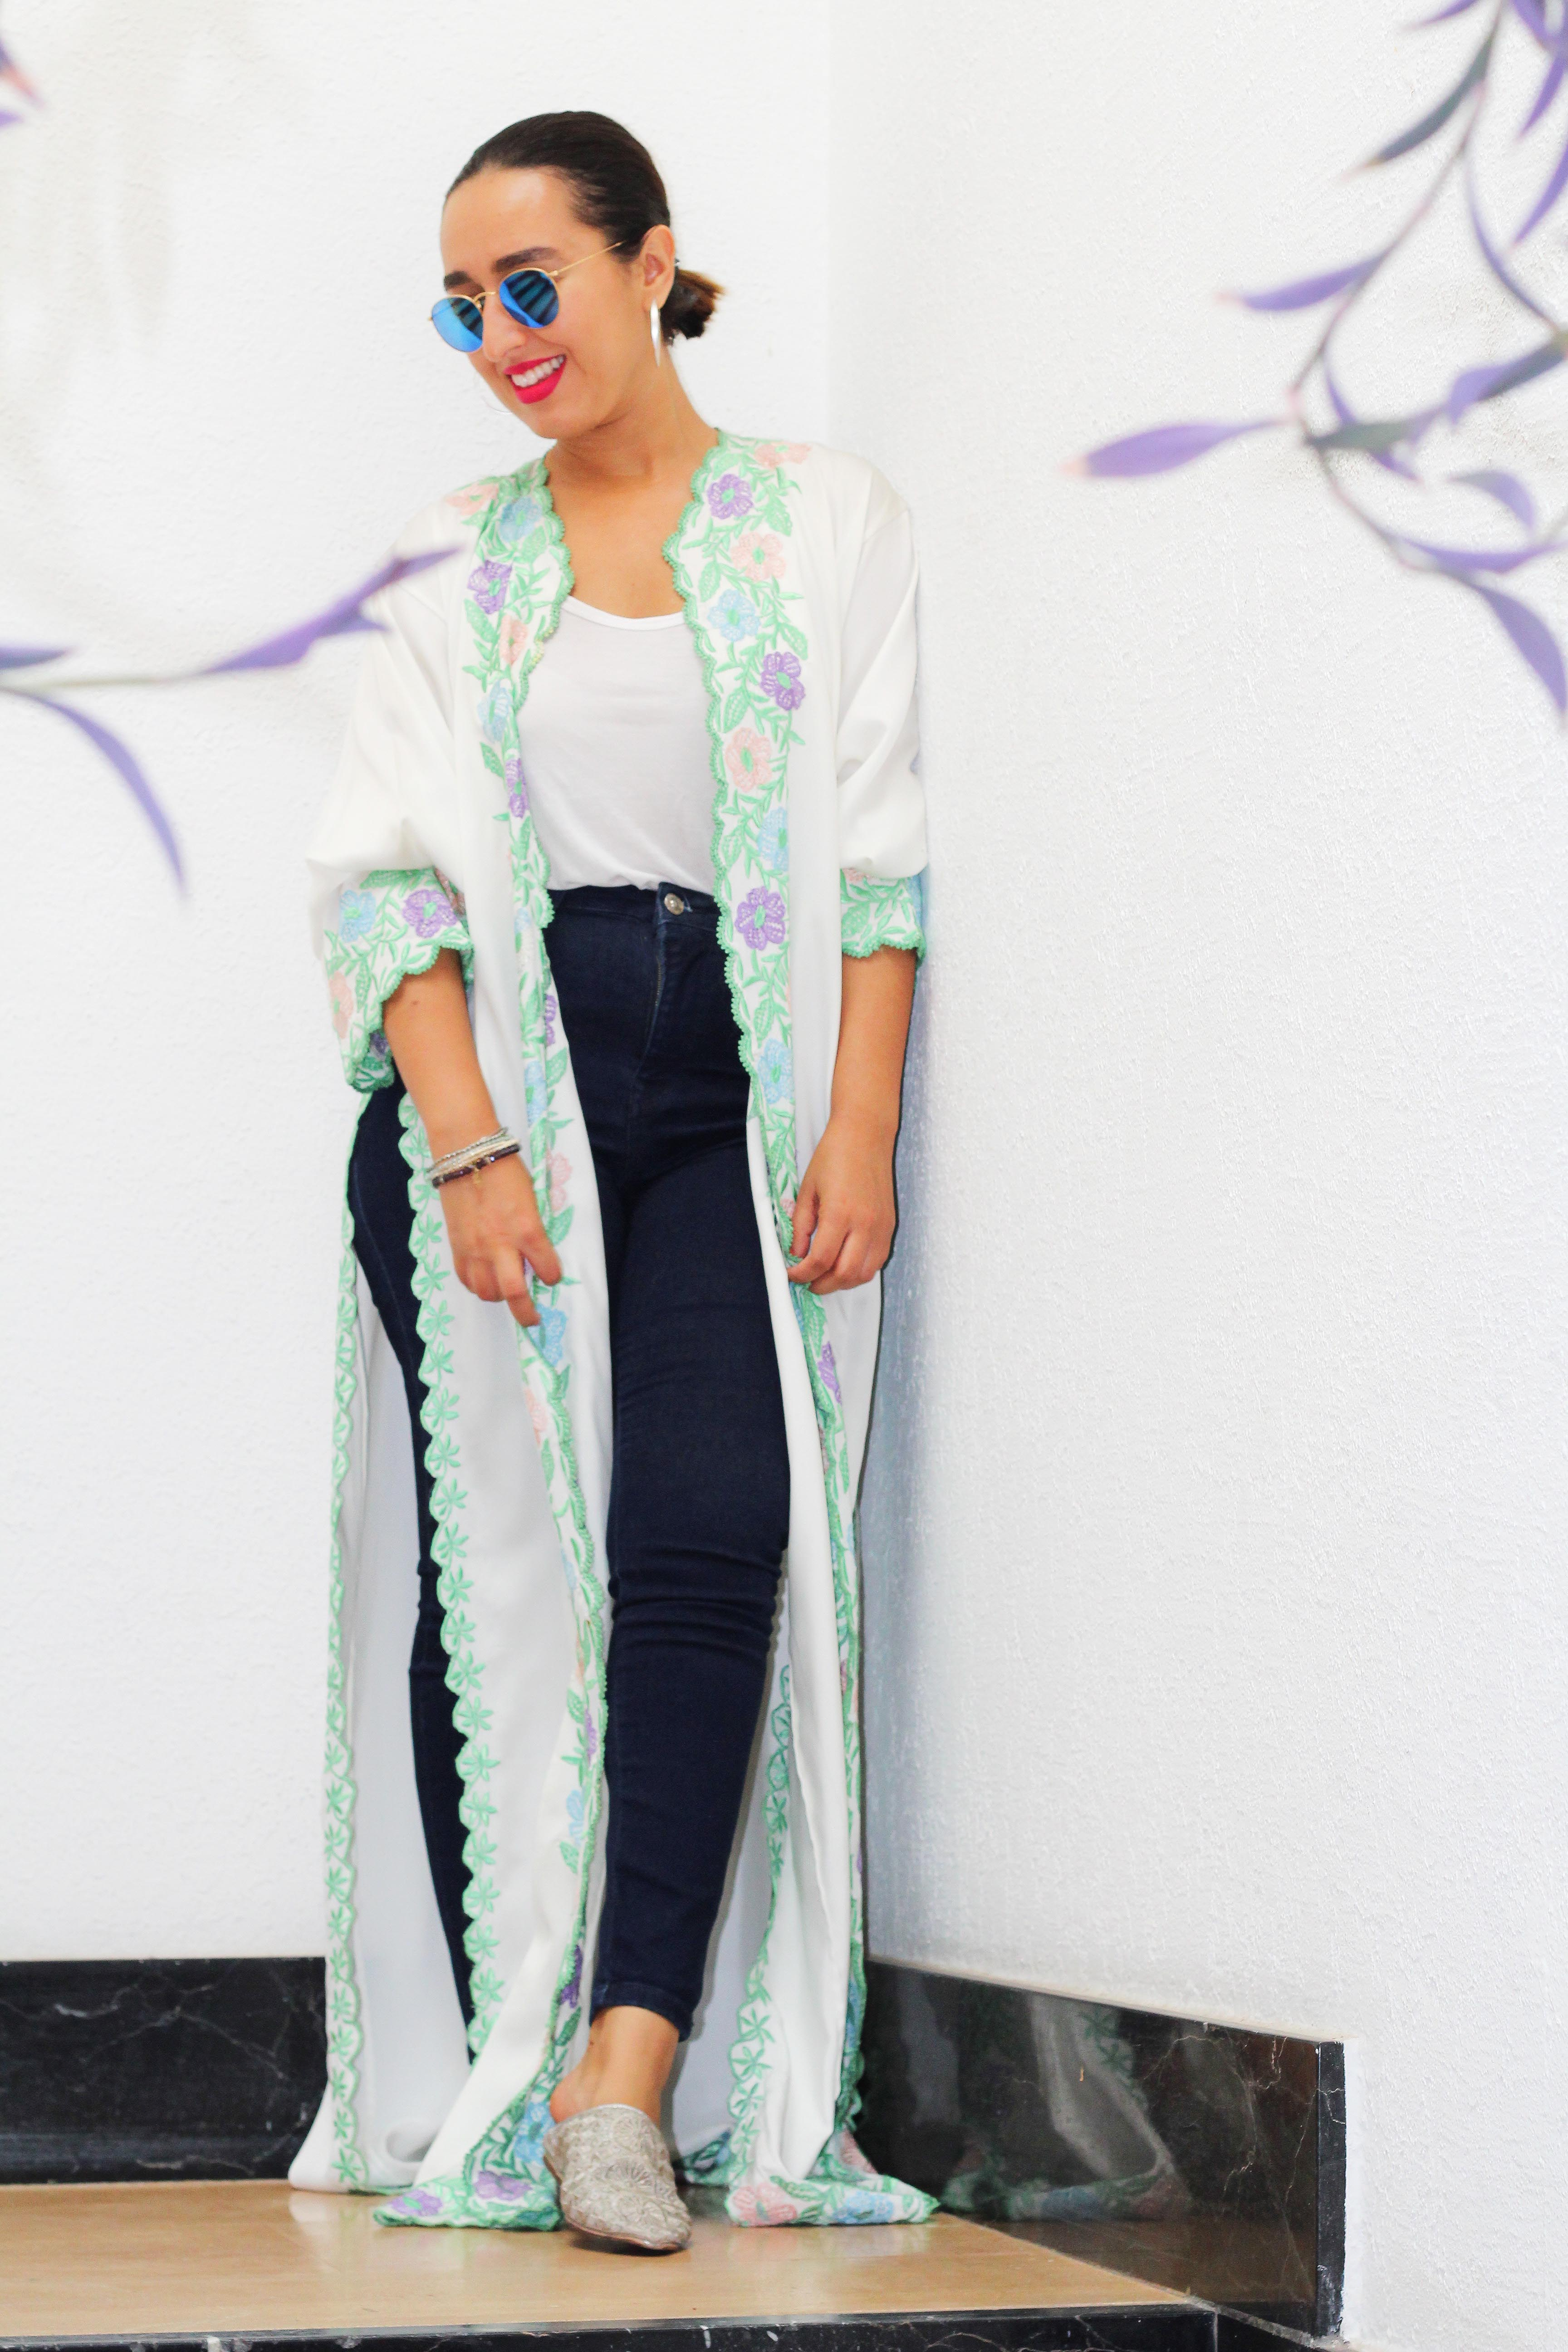 Eid outfit edit